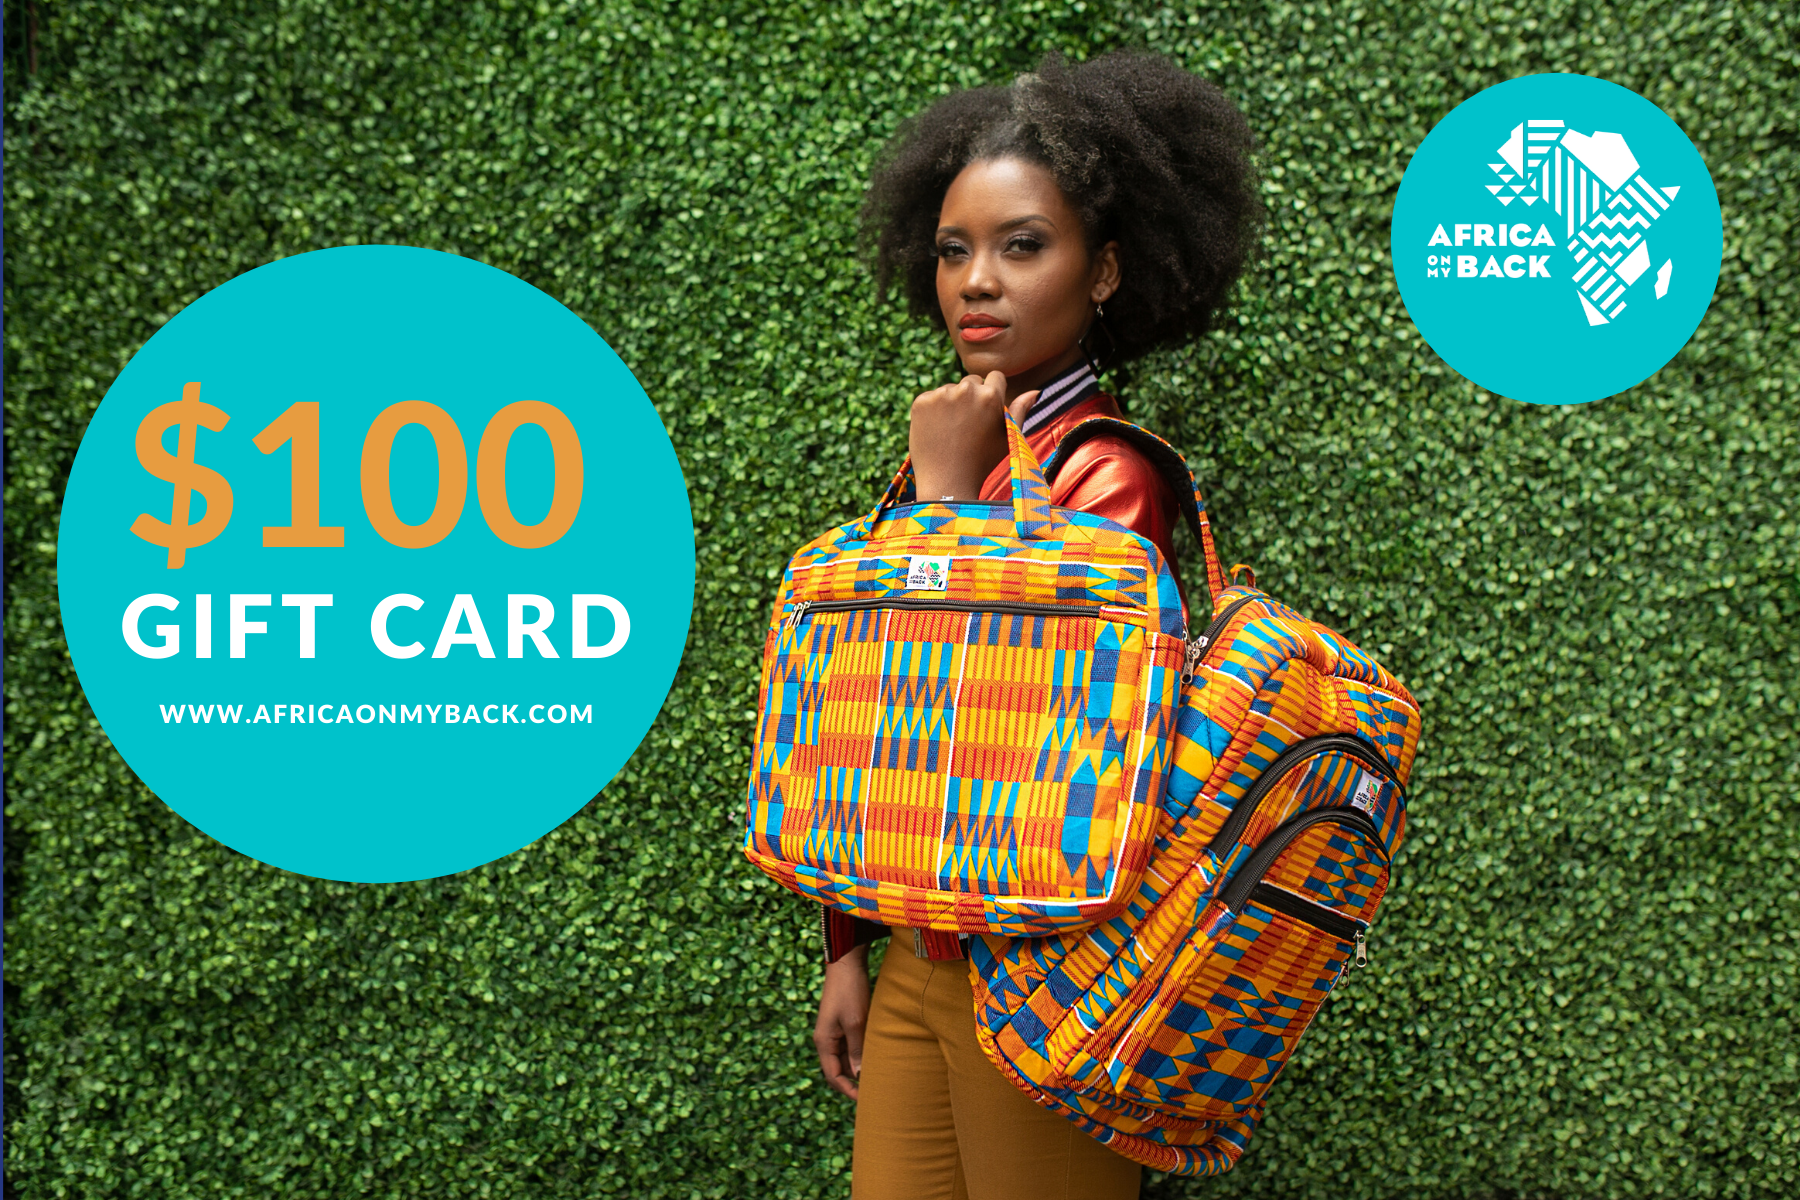 Africa On My Back Gift Cards